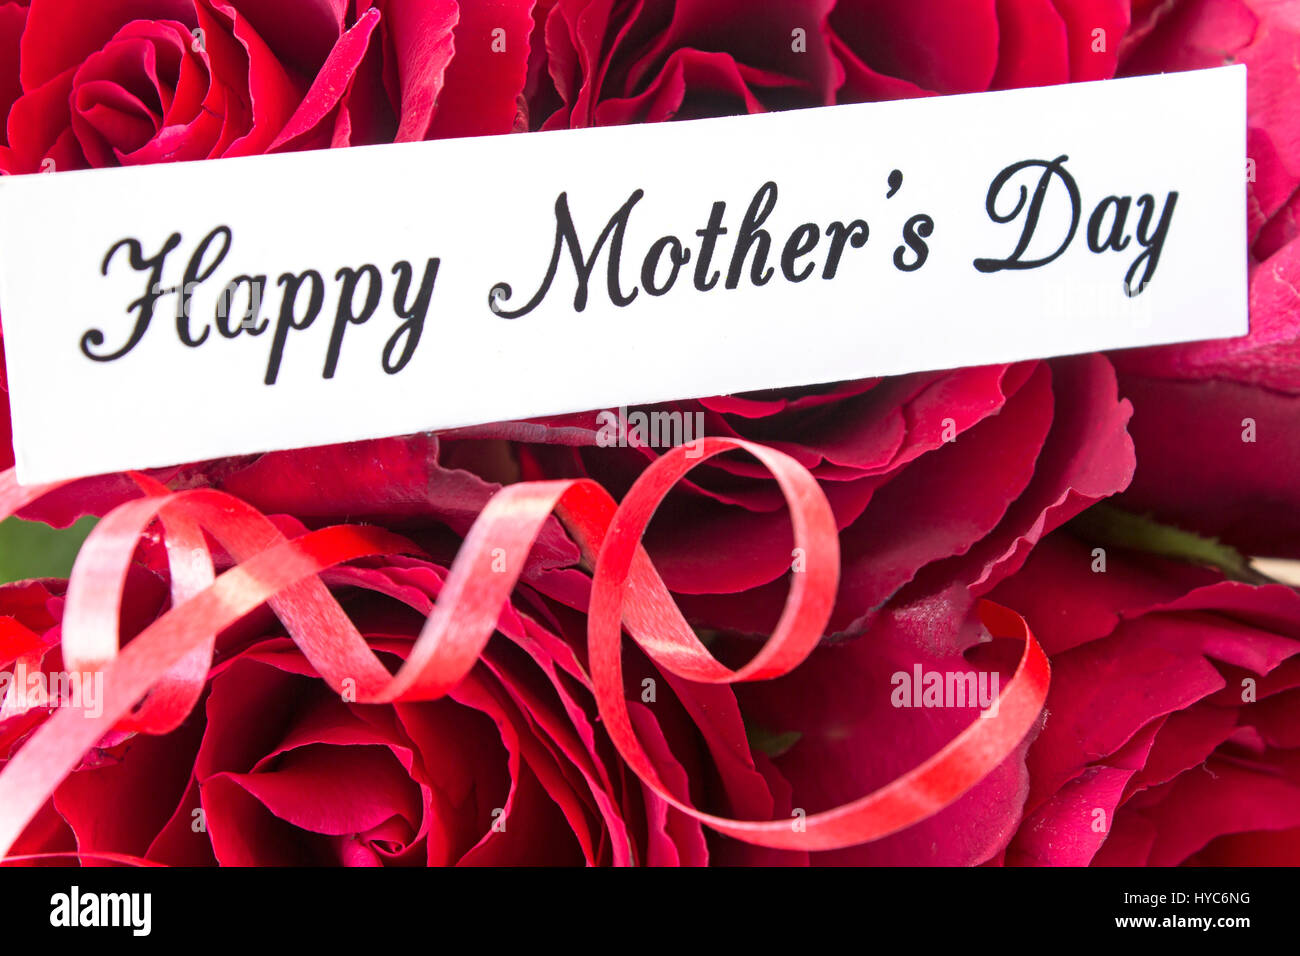 Happy mothers day greeting card with bouquet of red roses happy mothers day greeting card with bouquet of red roses close up kristyandbryce Image collections